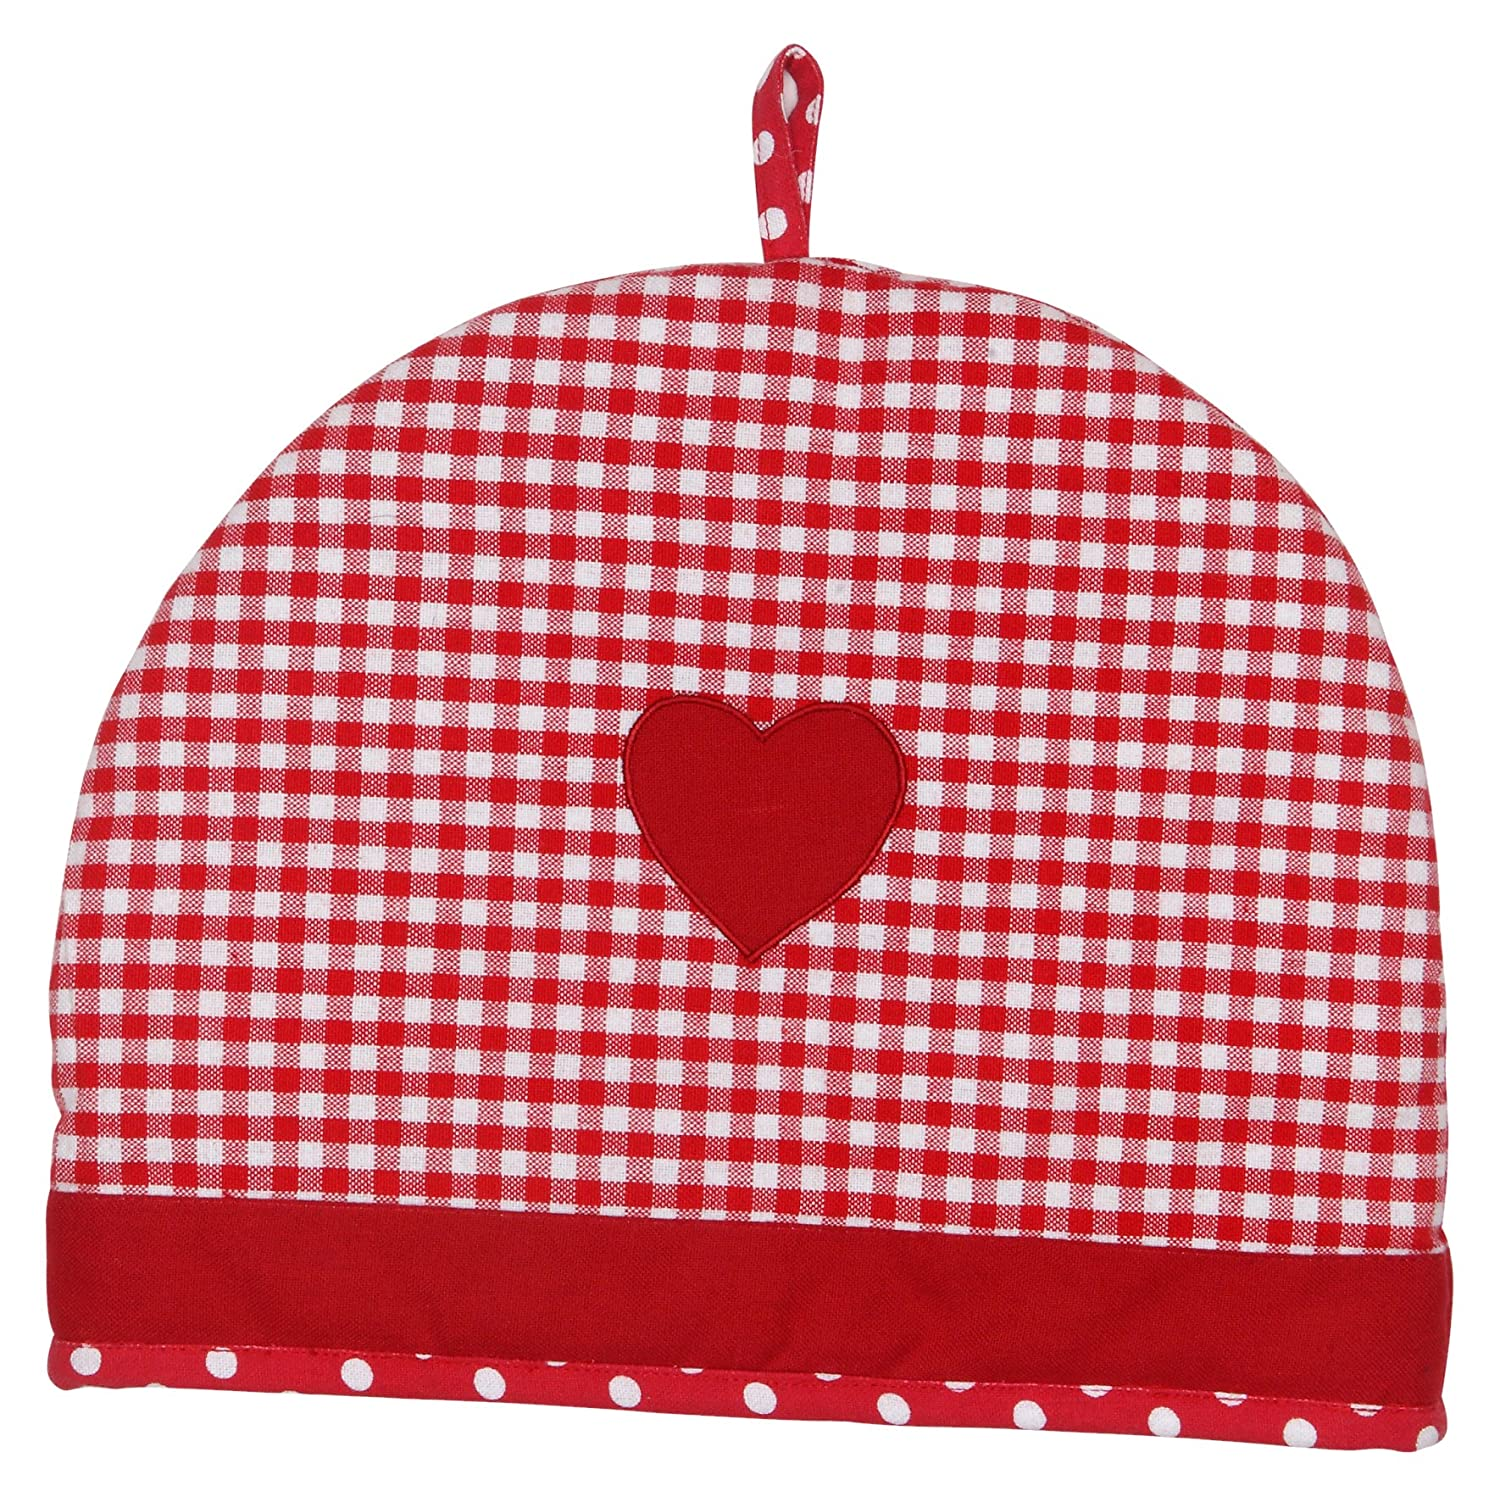 Now Design 34 x 26 x 2 cm Vintage Home Tea Cosy, Claret Danica 16150140